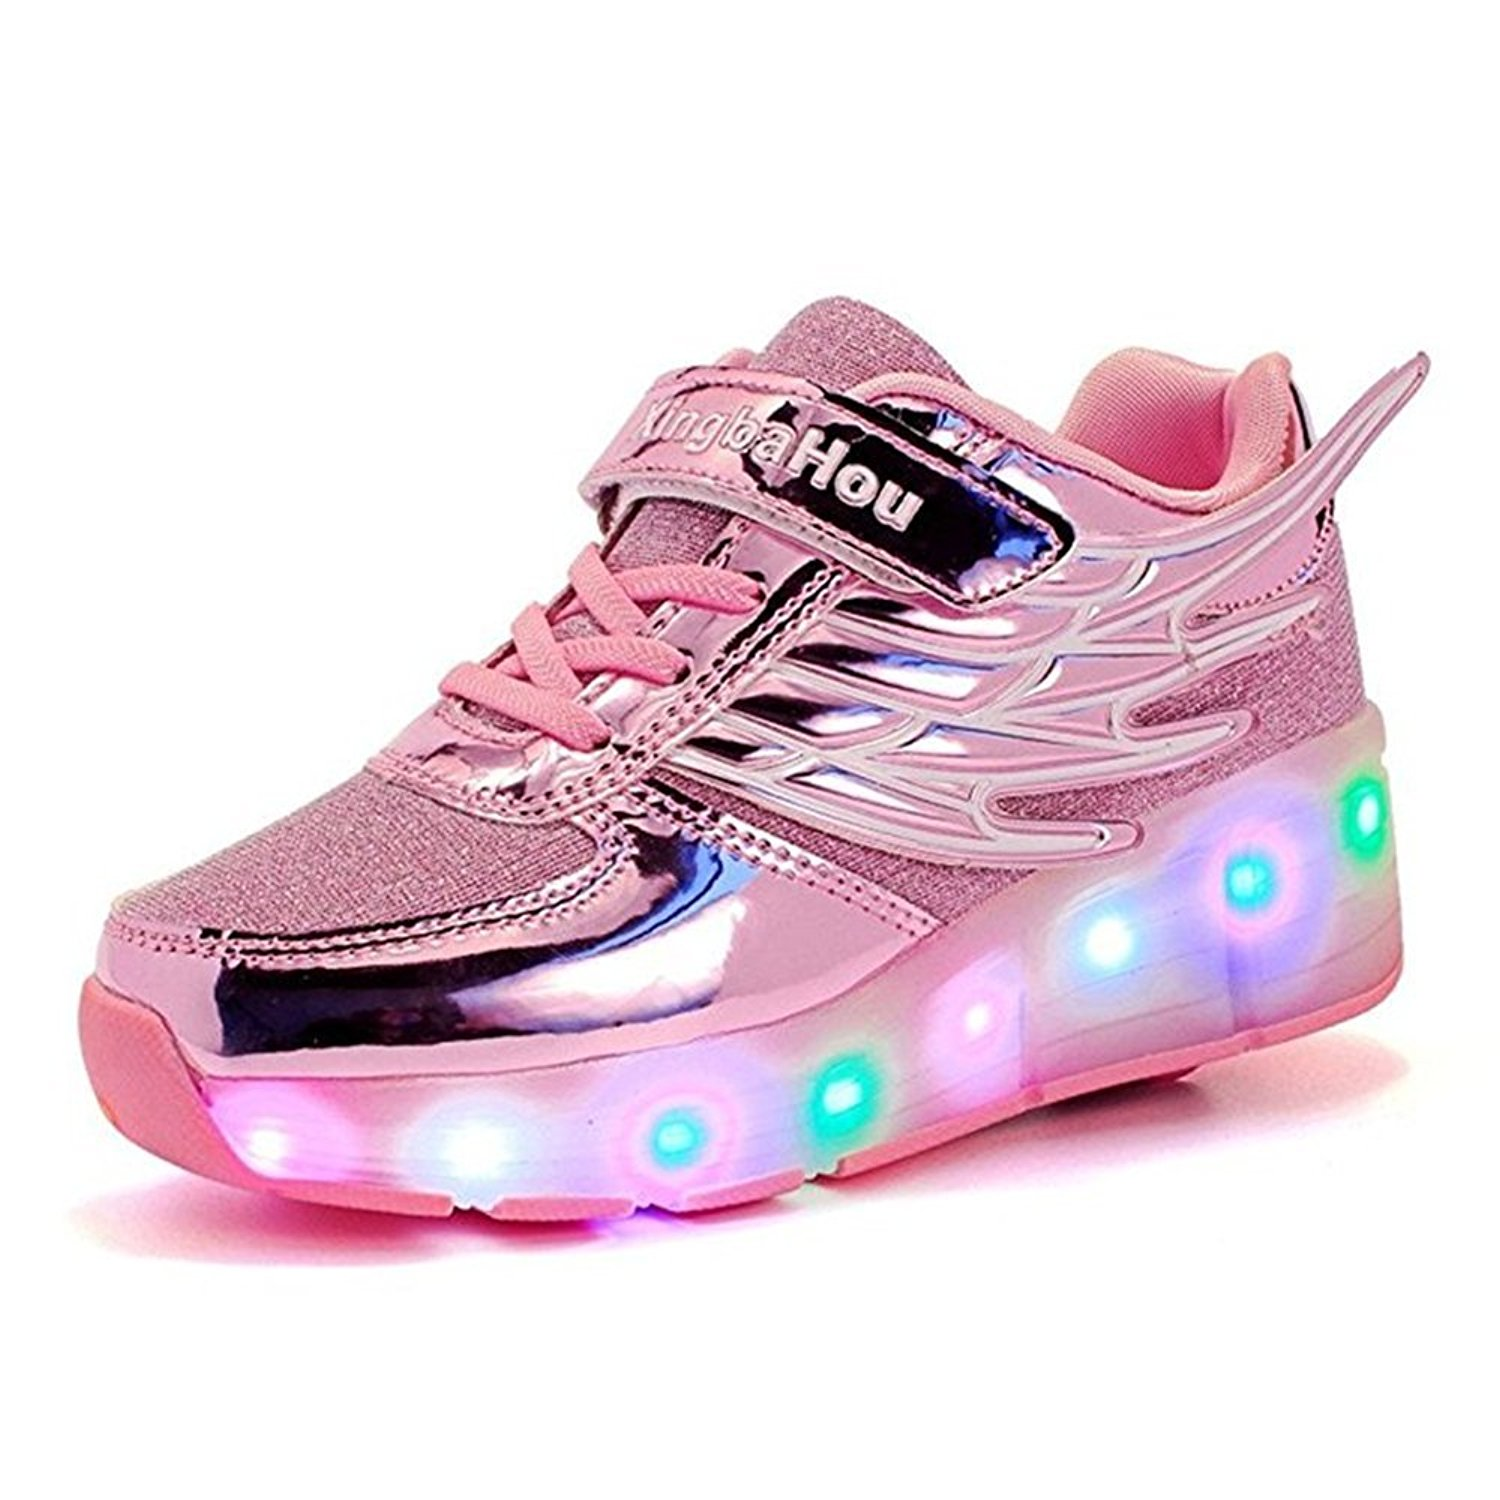 Kid Wings LED Light Up Roller Wheel Shoes Athletic Sneaker Sport Shoes Dance Boot Boy Girl ?Pink 5 M US Big Kid?